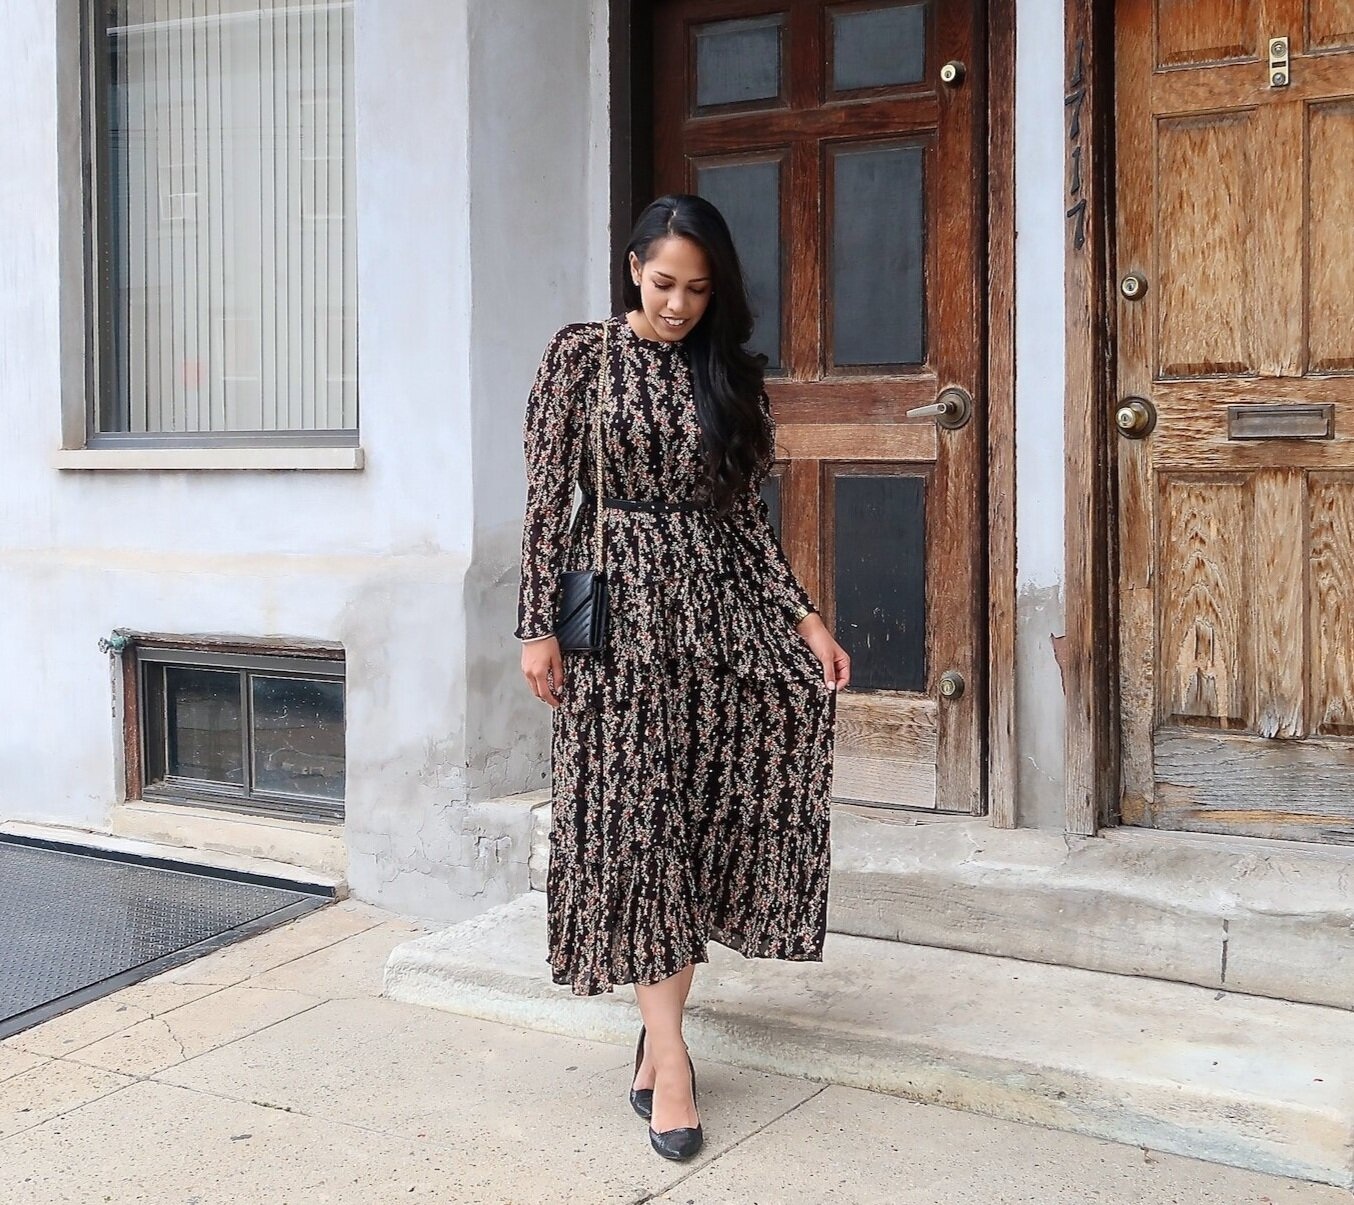 fall-trends-dress-outfit-inspiration-fashion-blogger.JPG